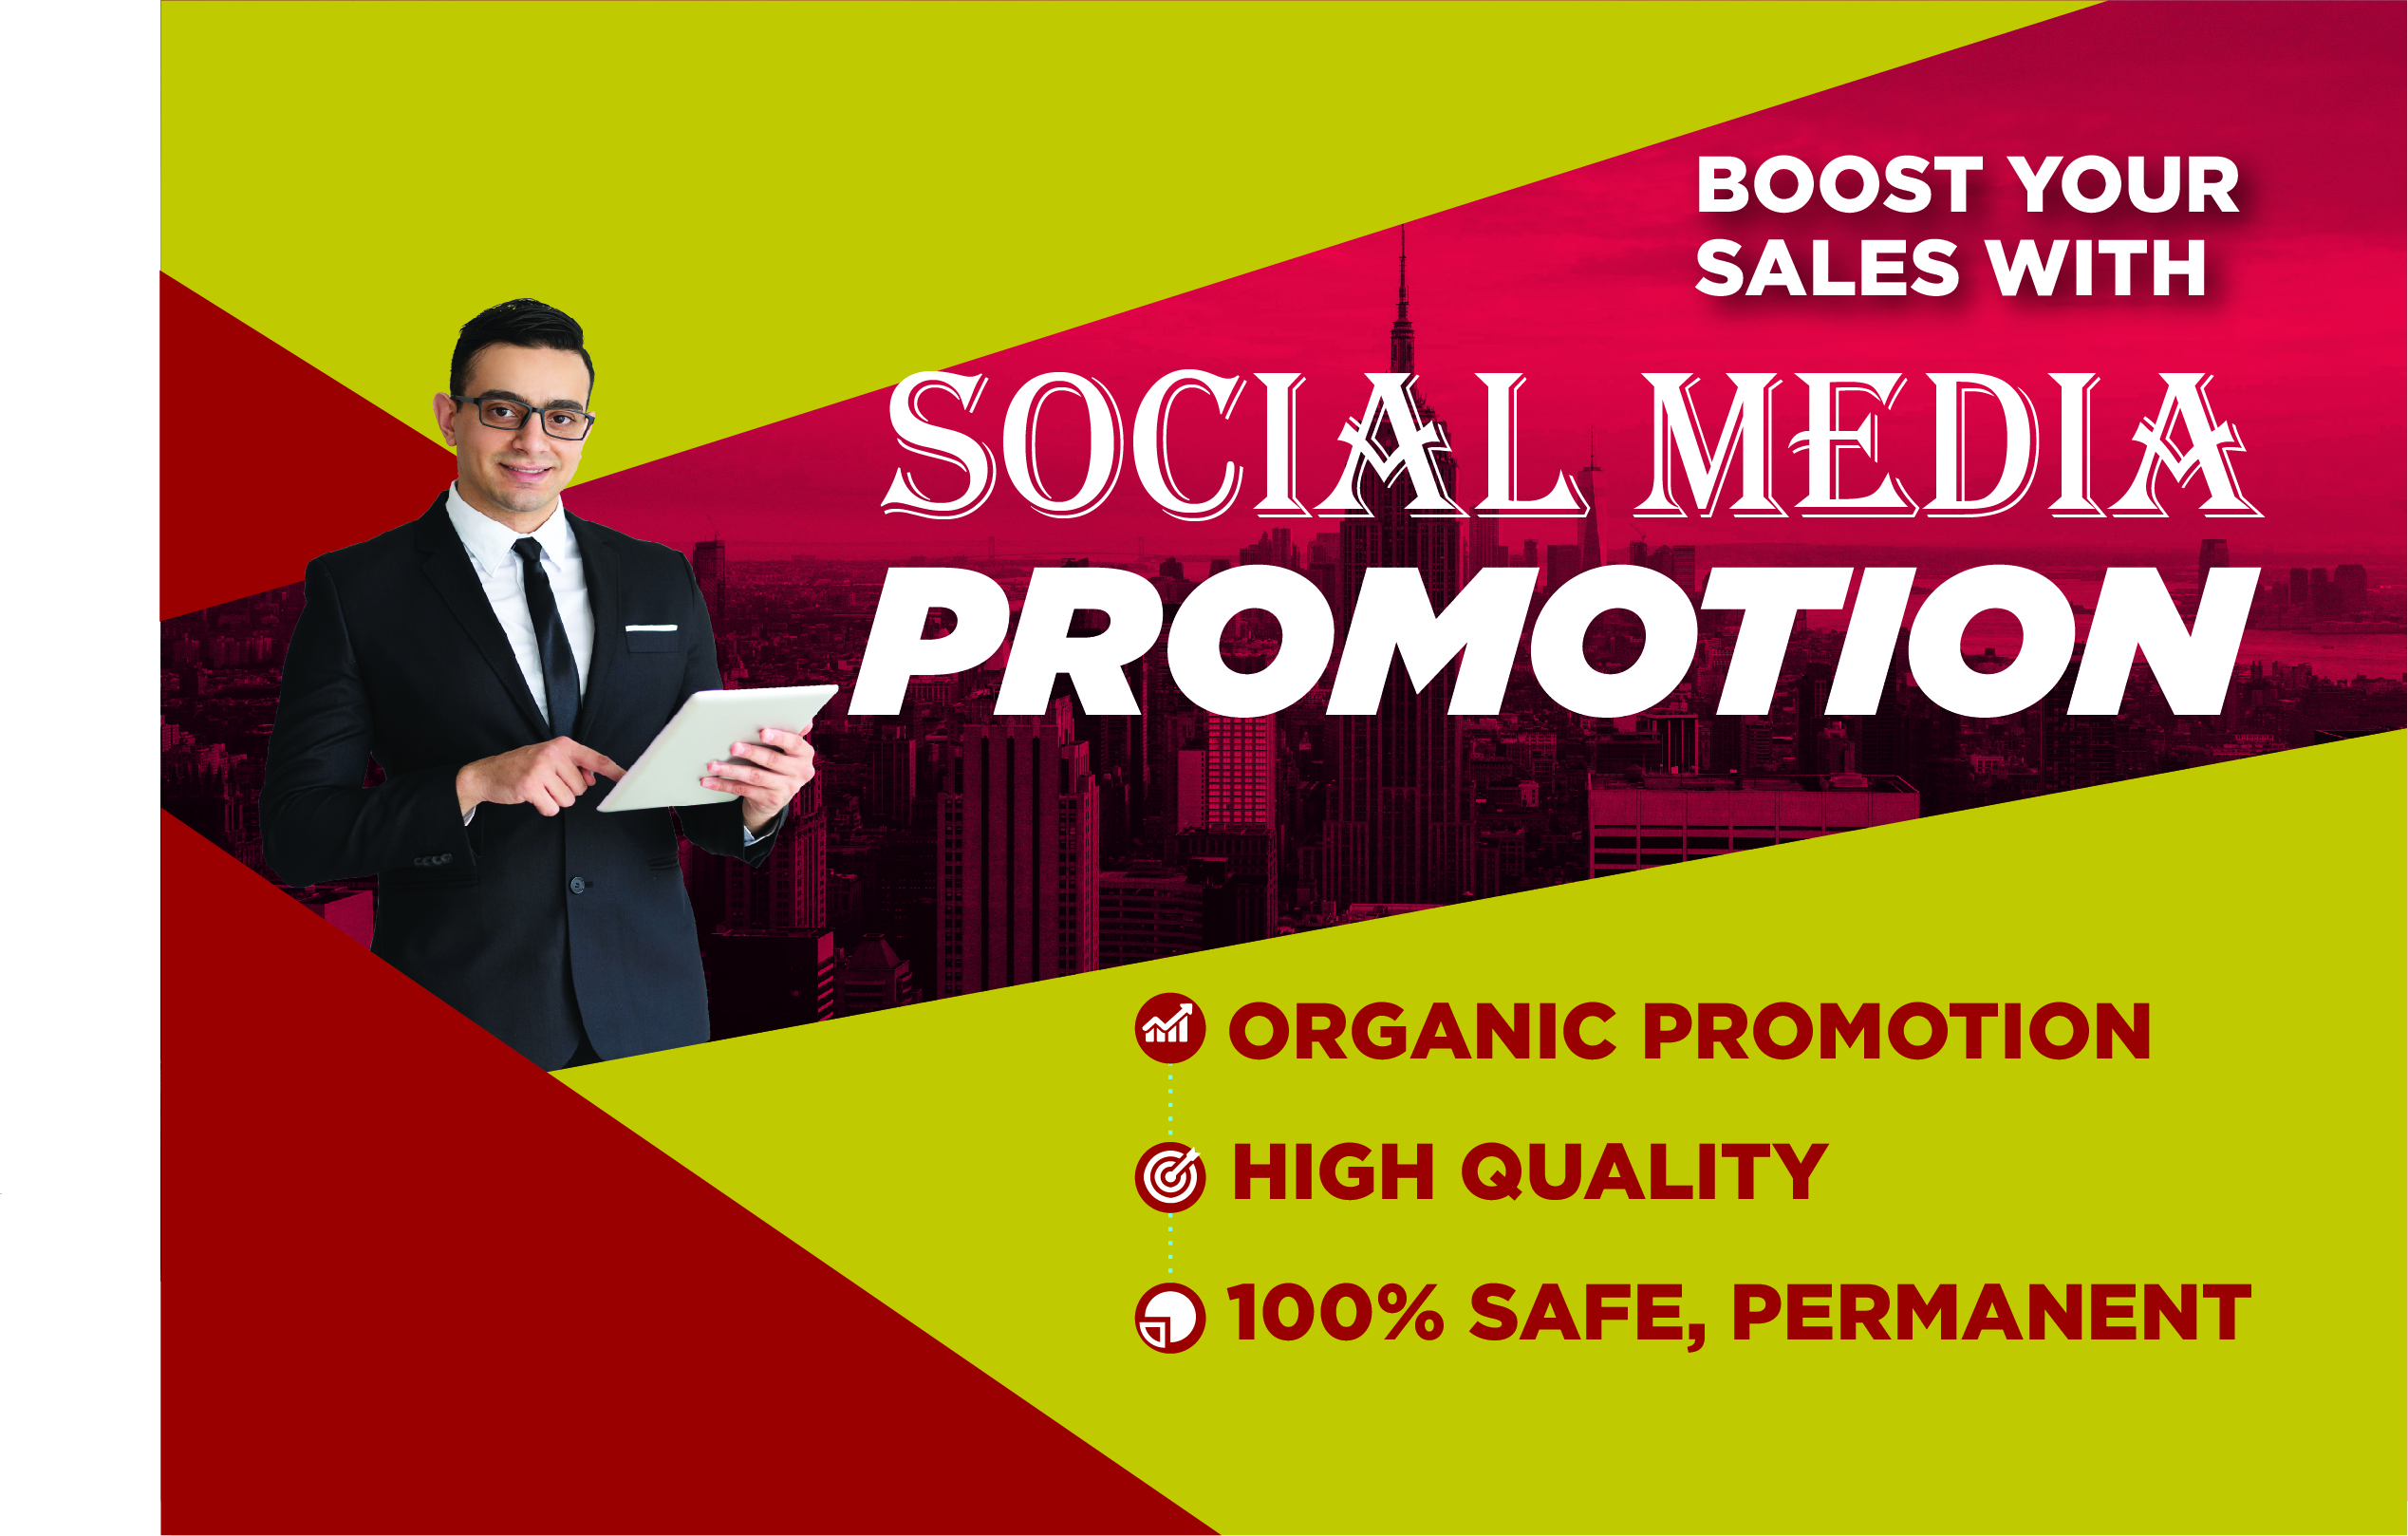 Website marketing and promote social media site and real promotion